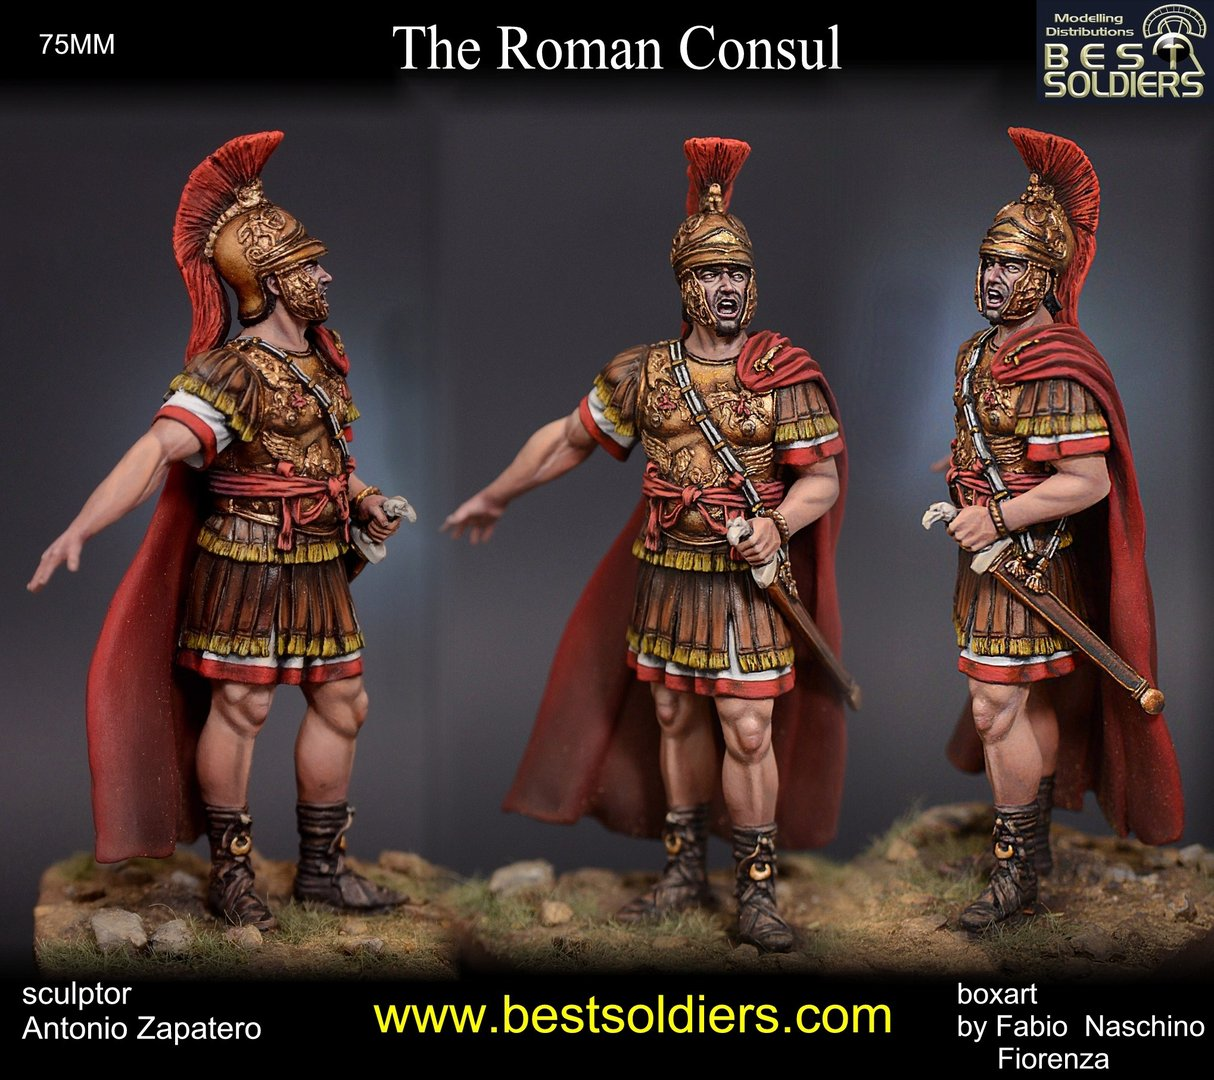 Roman Consul III bC (enclose version 75031)